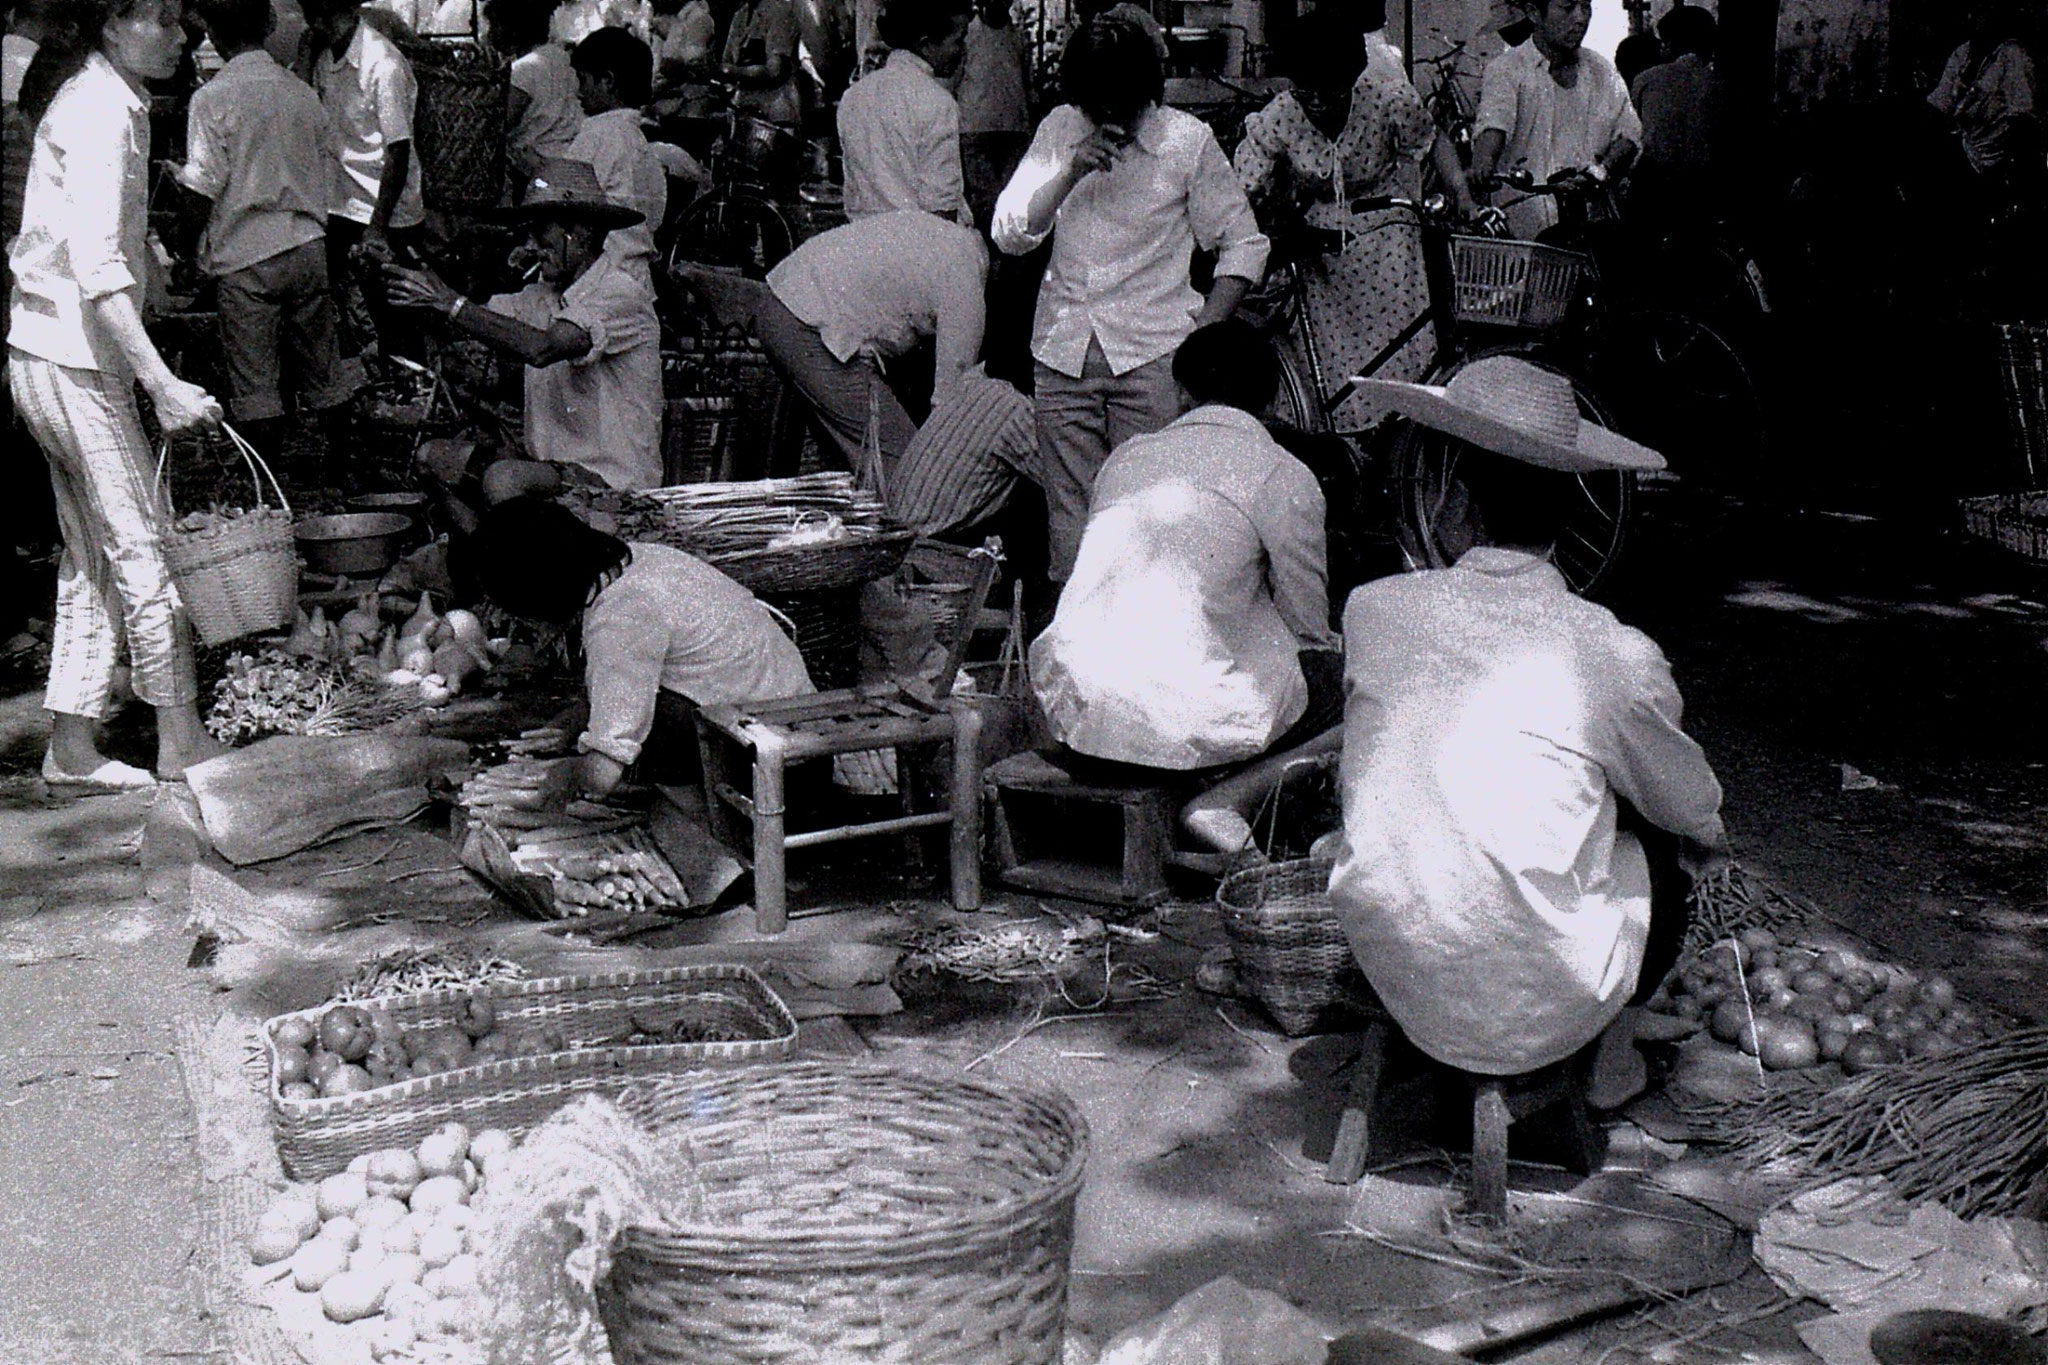 27/6/1989: 26: Shaoxing market, vegetables